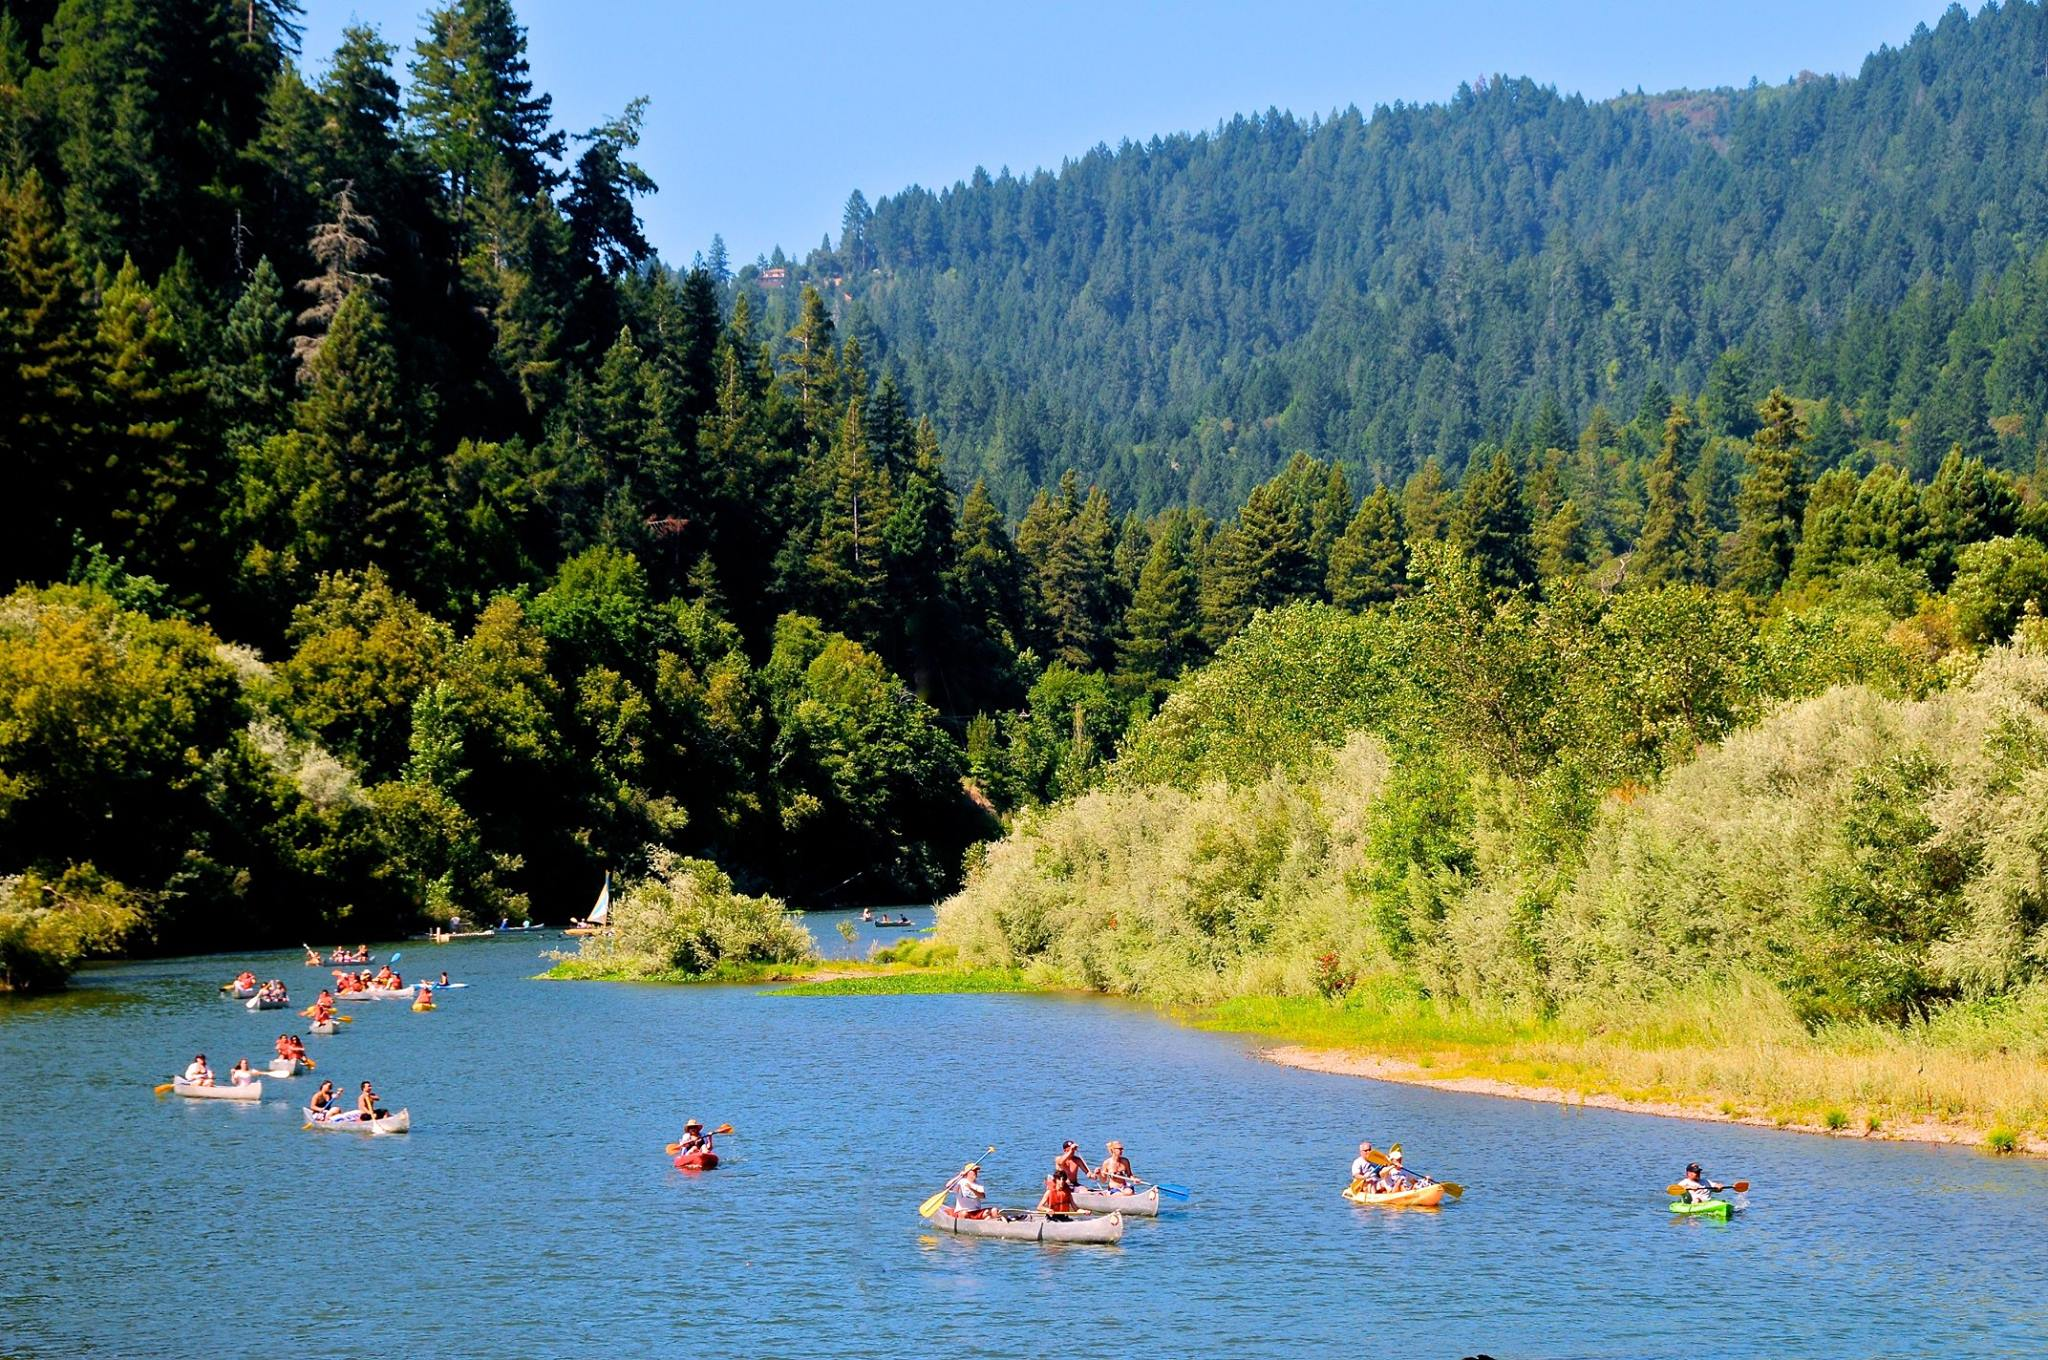 Go canoeing with Burke's Canoe Trip or standup paddleboarding with SUP Odessey on the Russian River in Sonoma County, California